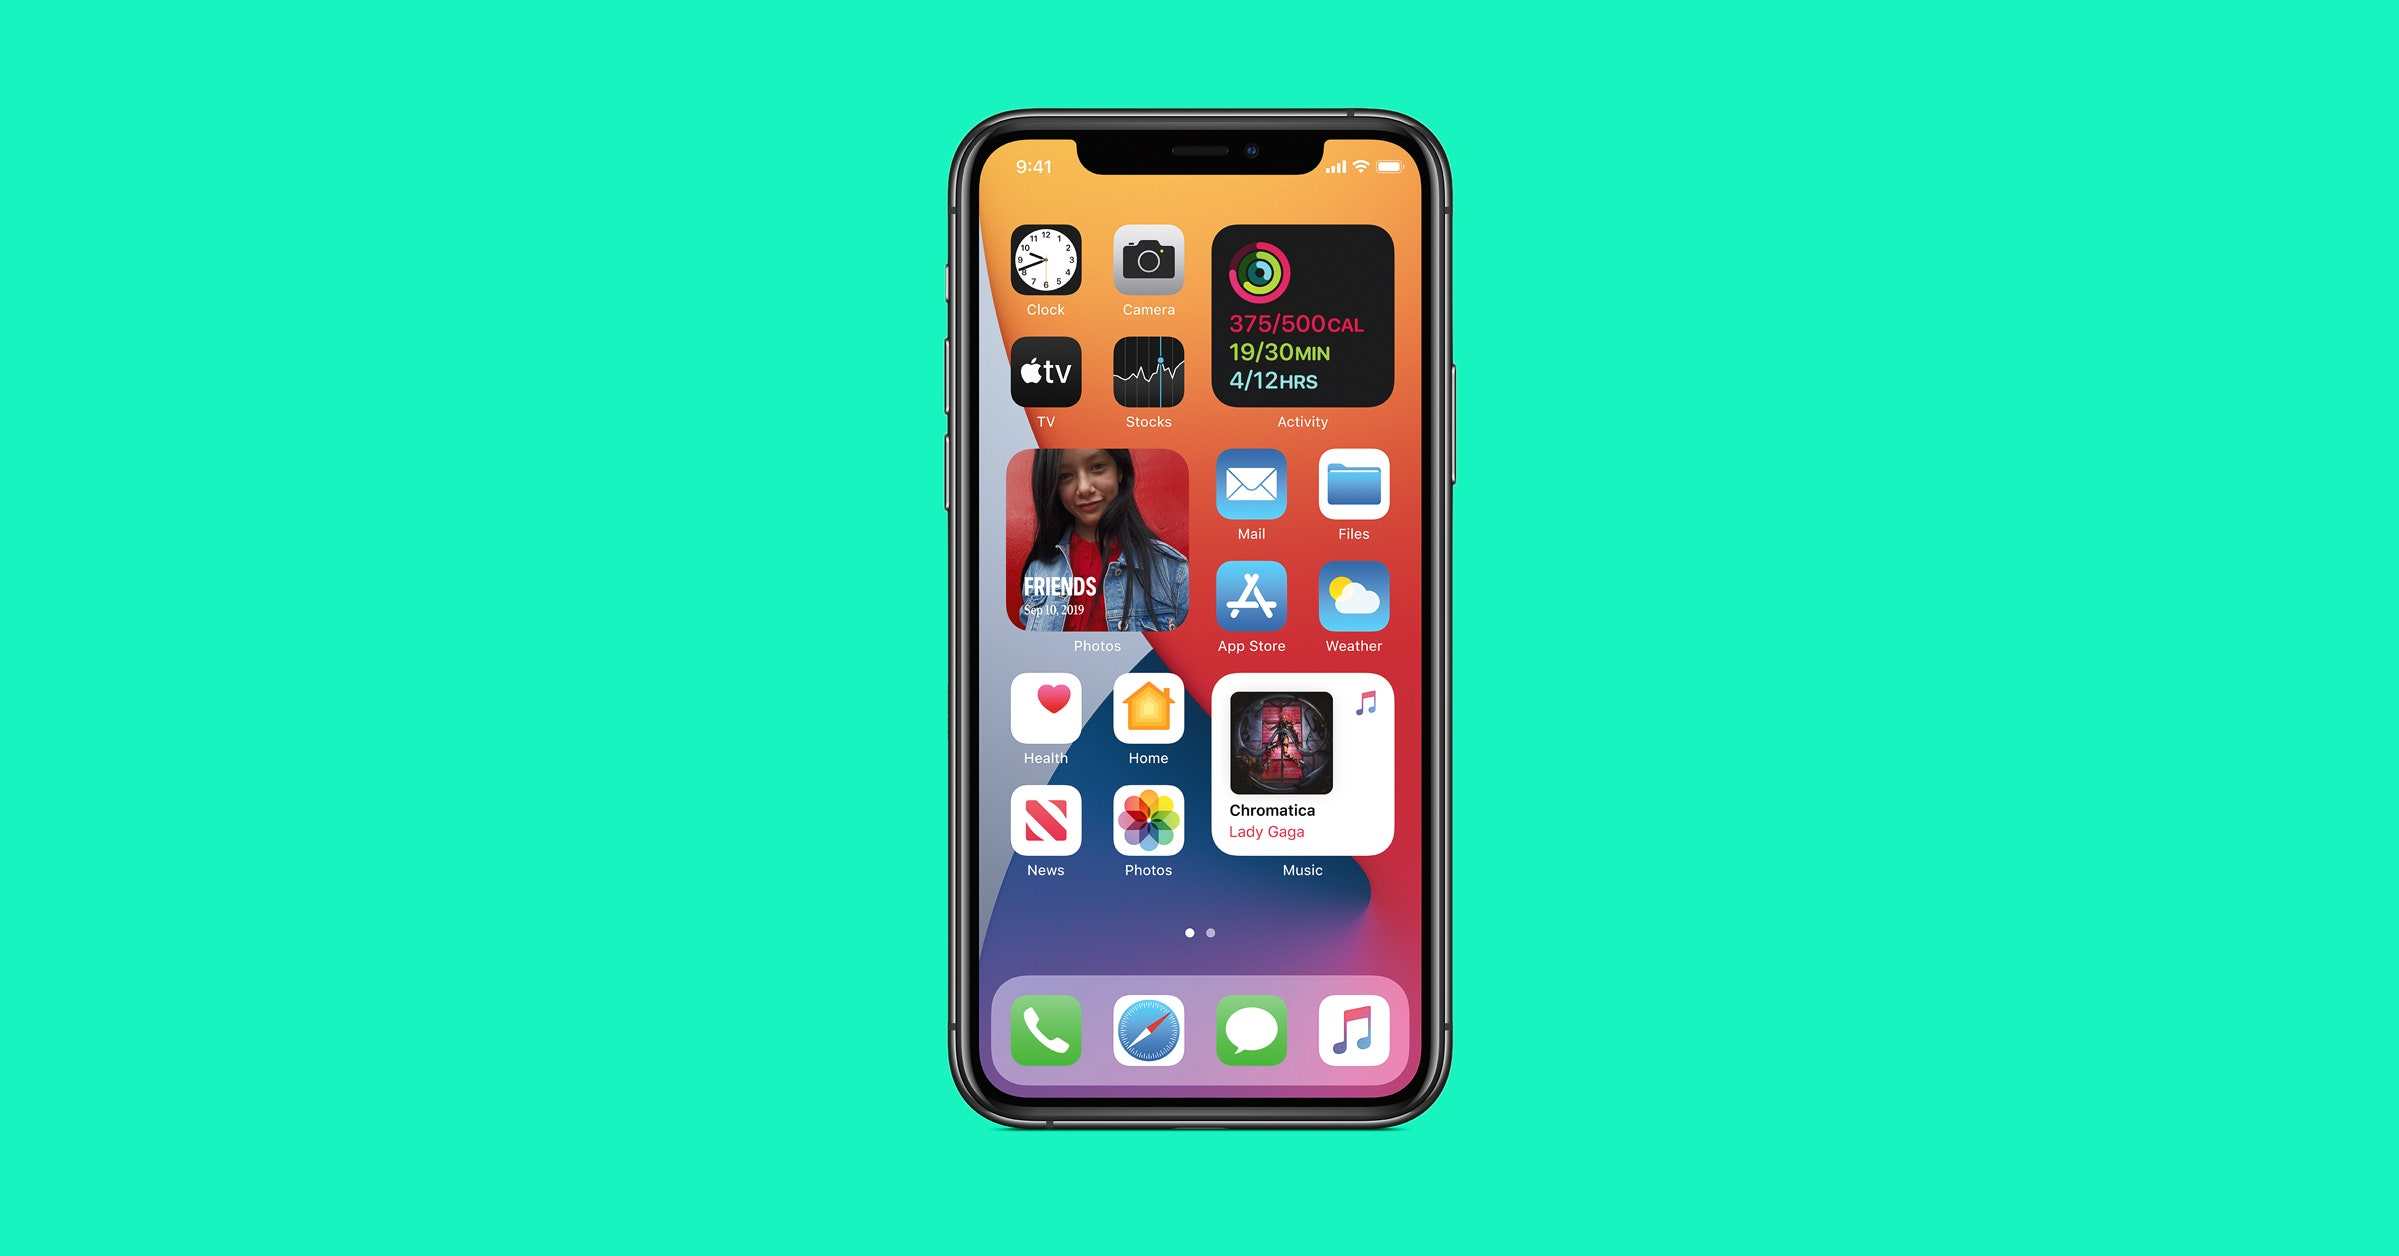 Updated Full List Of Smaller Changes In Ios 14 Apple Tld